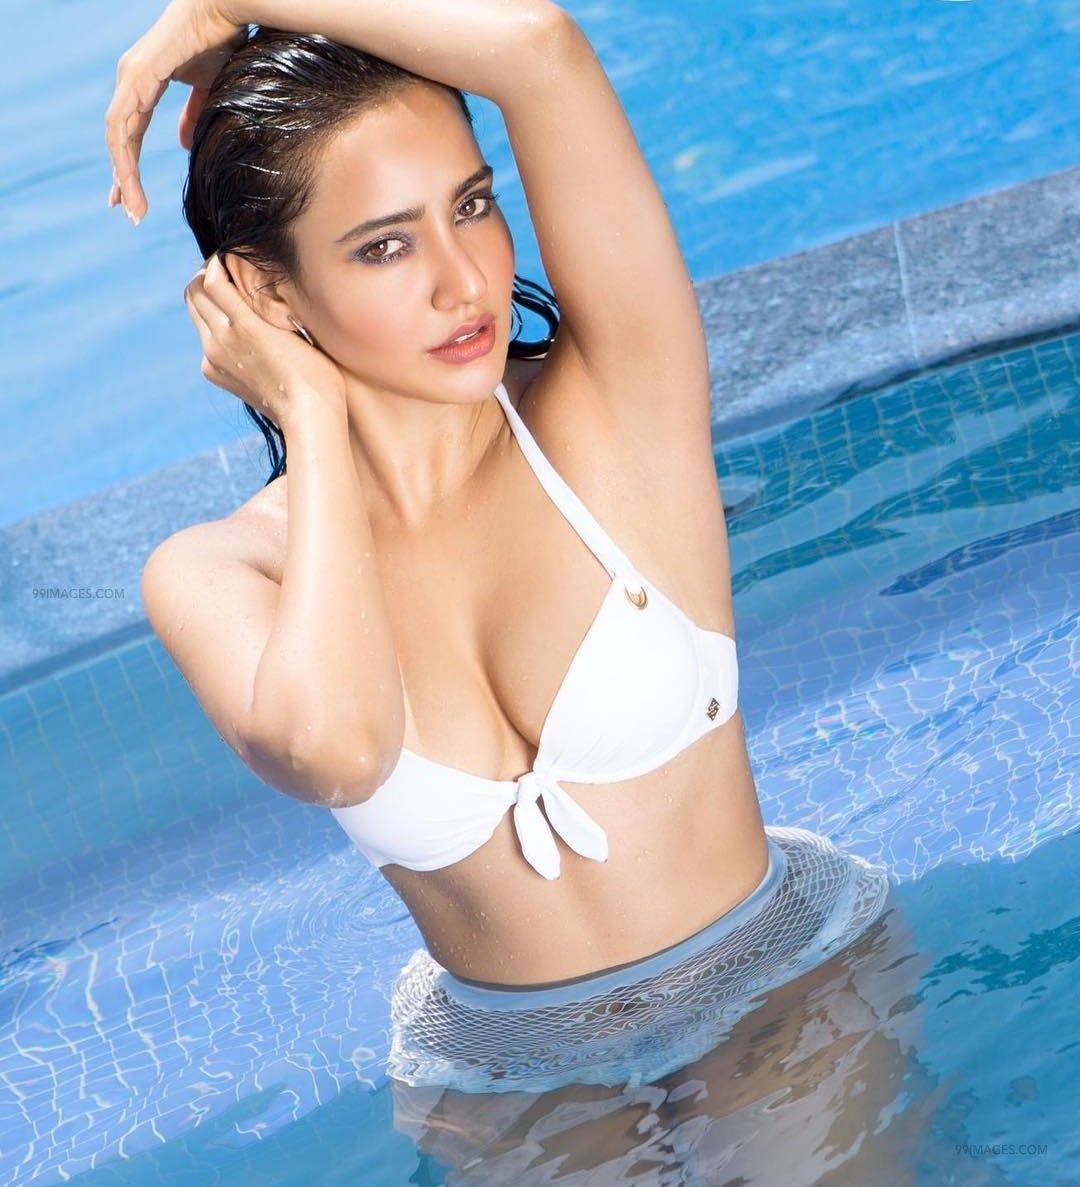 Neha Sharma Hot HD Photos & Mobile Wallpapers (1080p)) (64235) - Neha Sharma